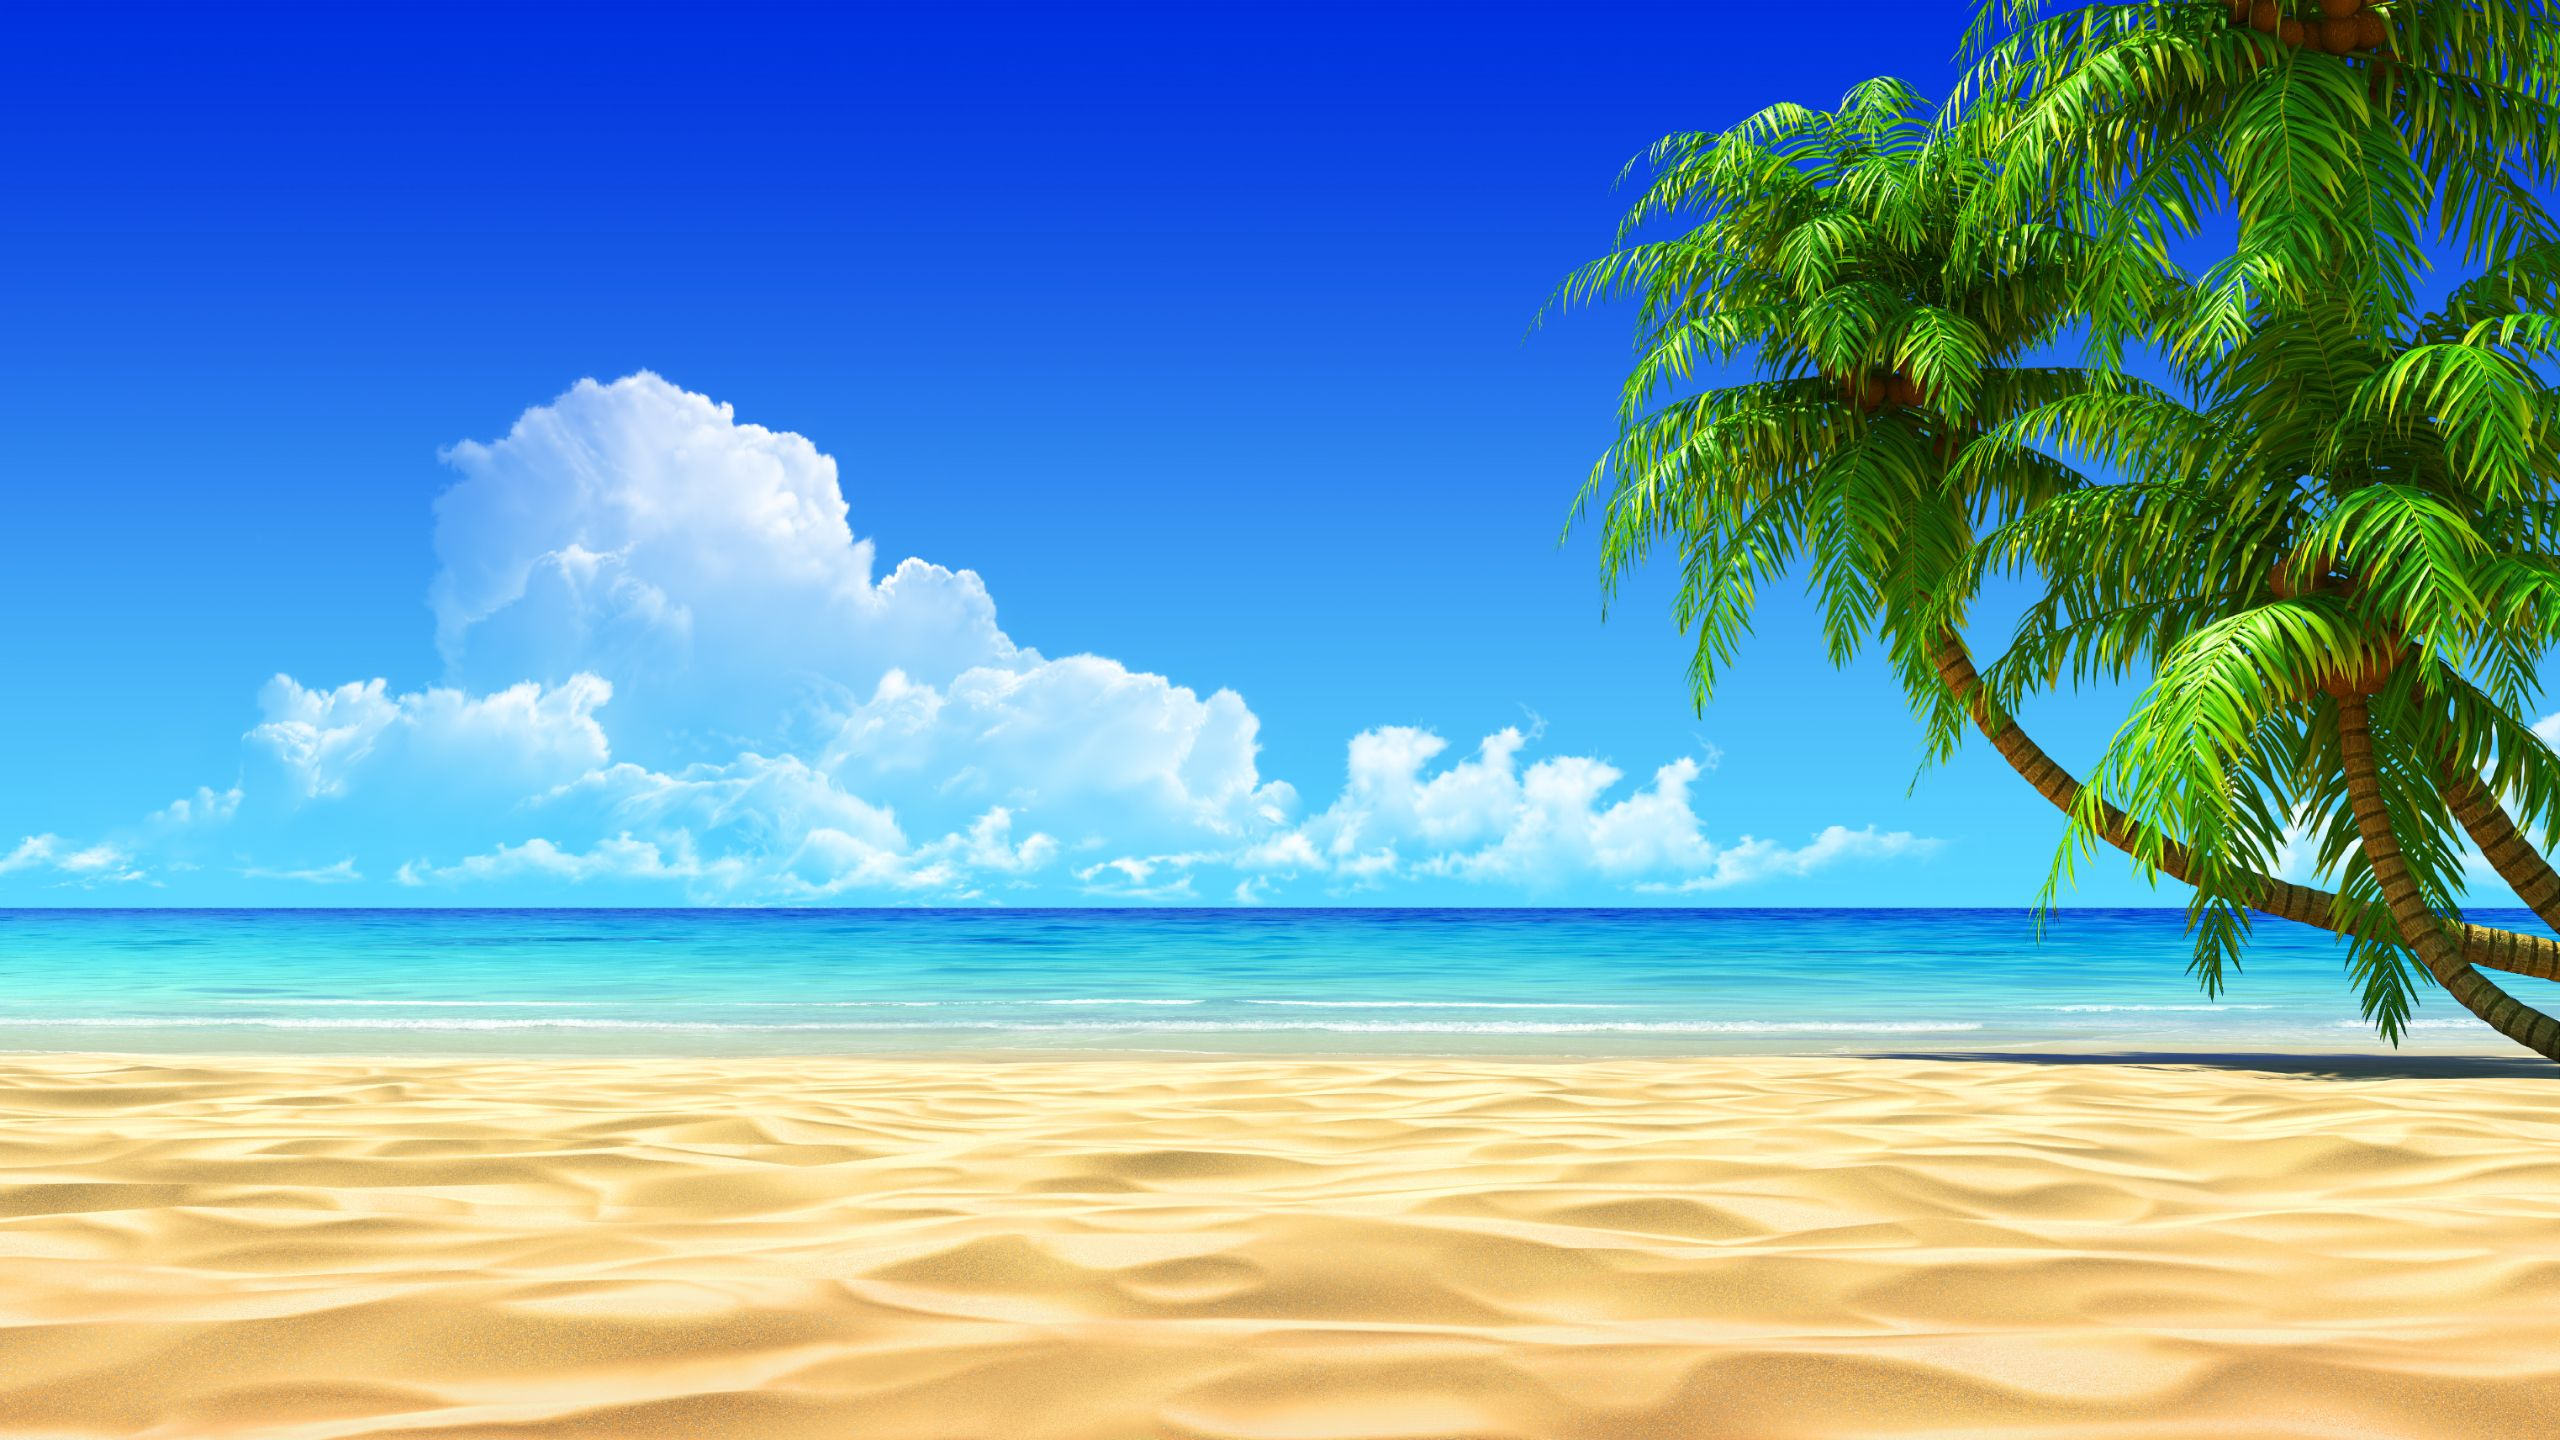 Cancun clipart beach wallpaper.